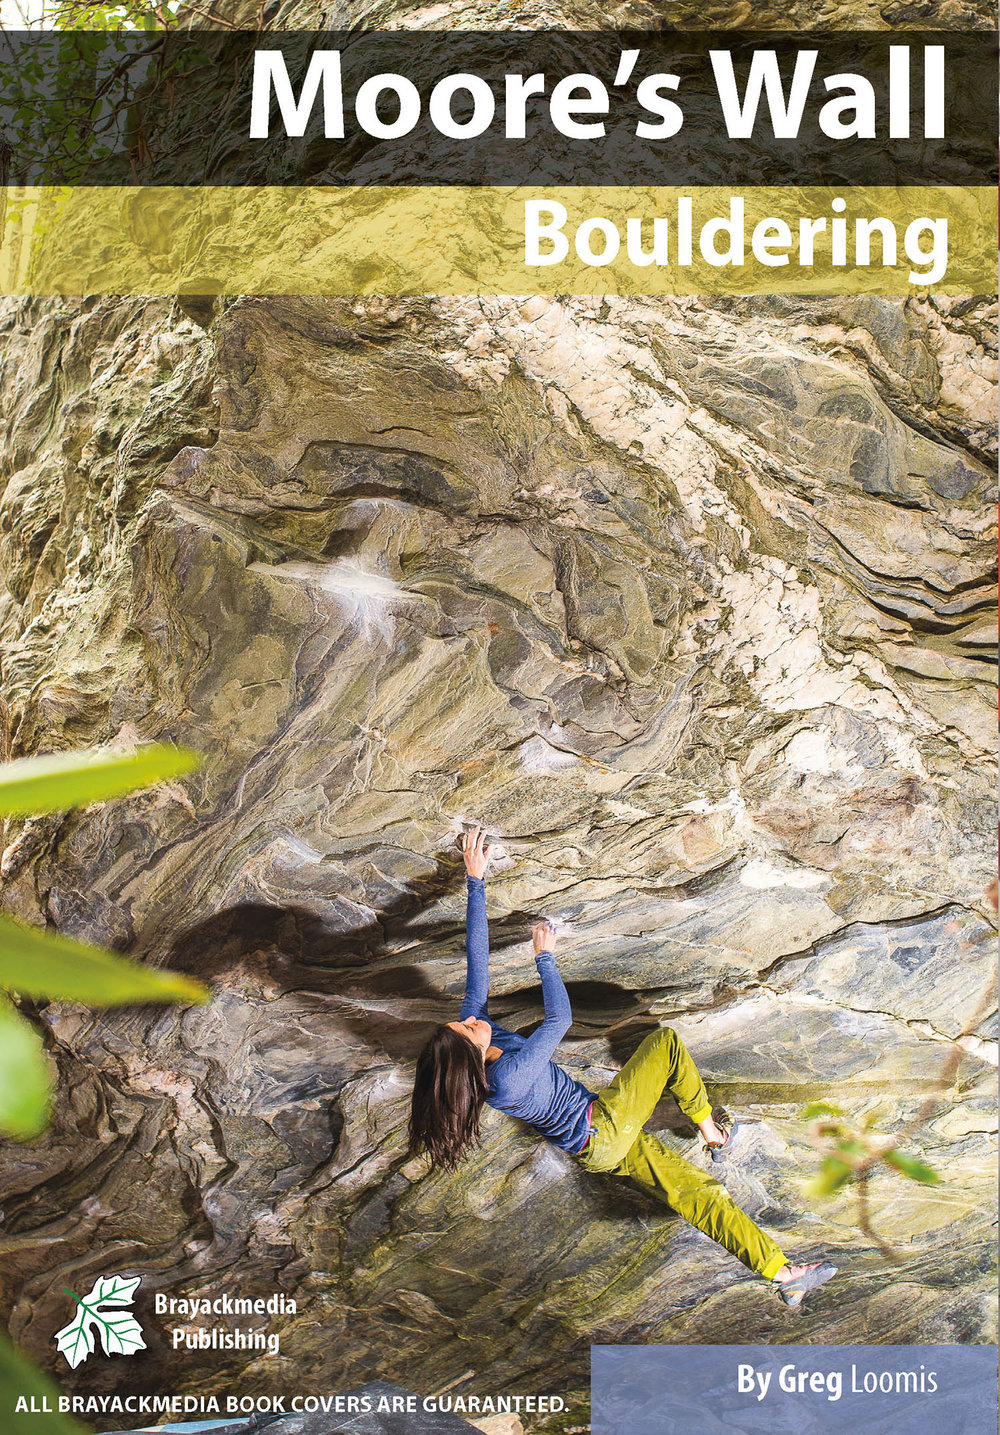 Moore's wall BoulderinG Guidebook - Near Winston-Salem, North Carolina, Moores Wall is an excellent winter bouldering destination with tons of great boulder on unique rock.This guidebook covers 539 Problems in 280 pages. The book includes High Quality Maps, Topo Images and Action Images.